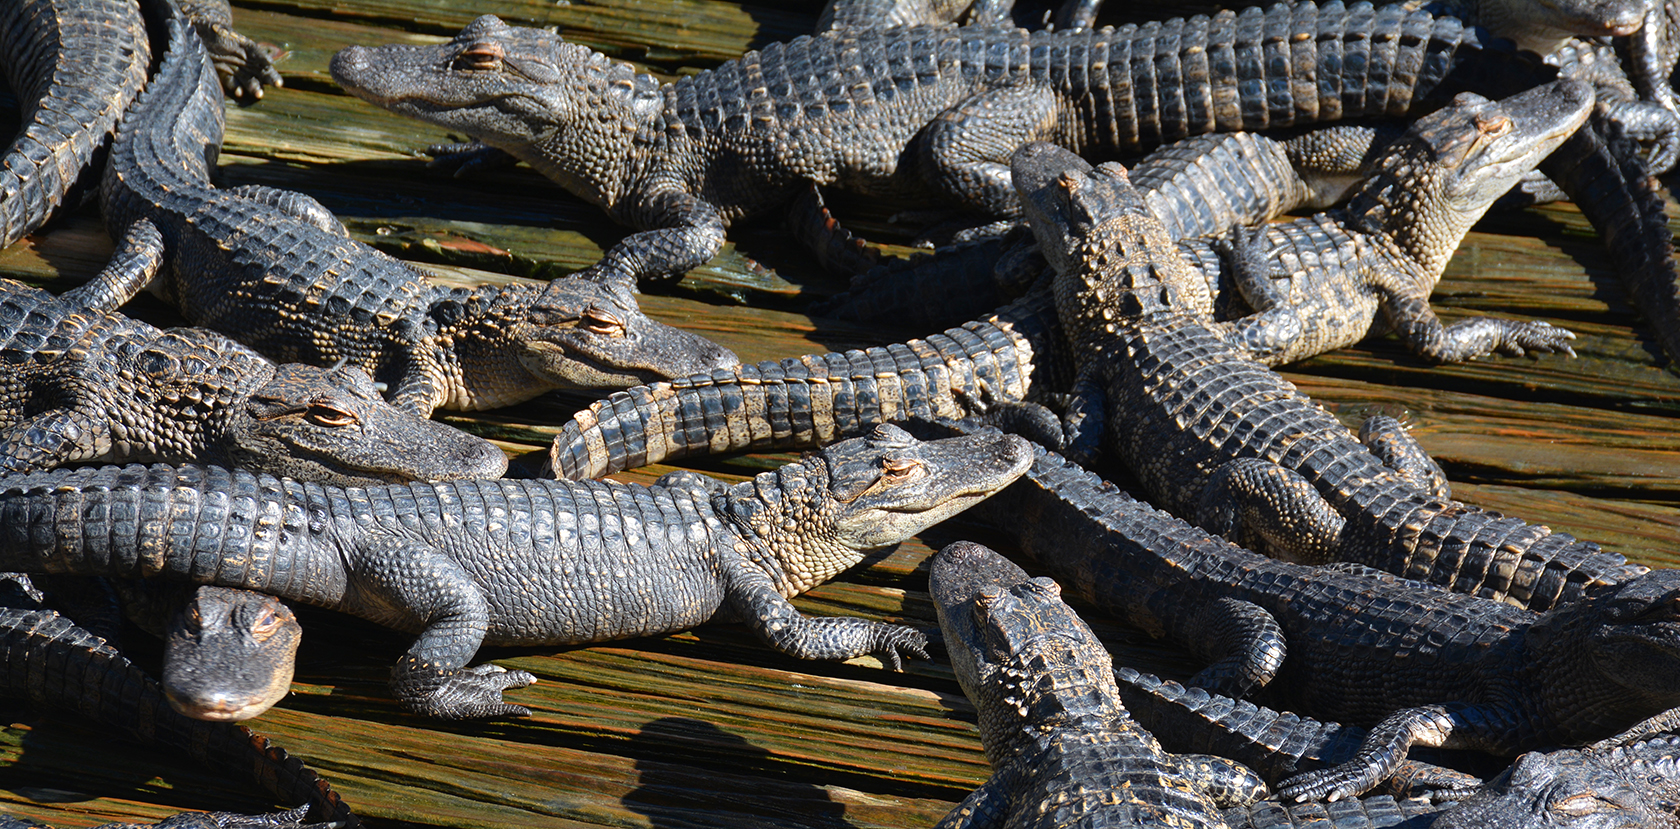 Reconnecting with Gatorland